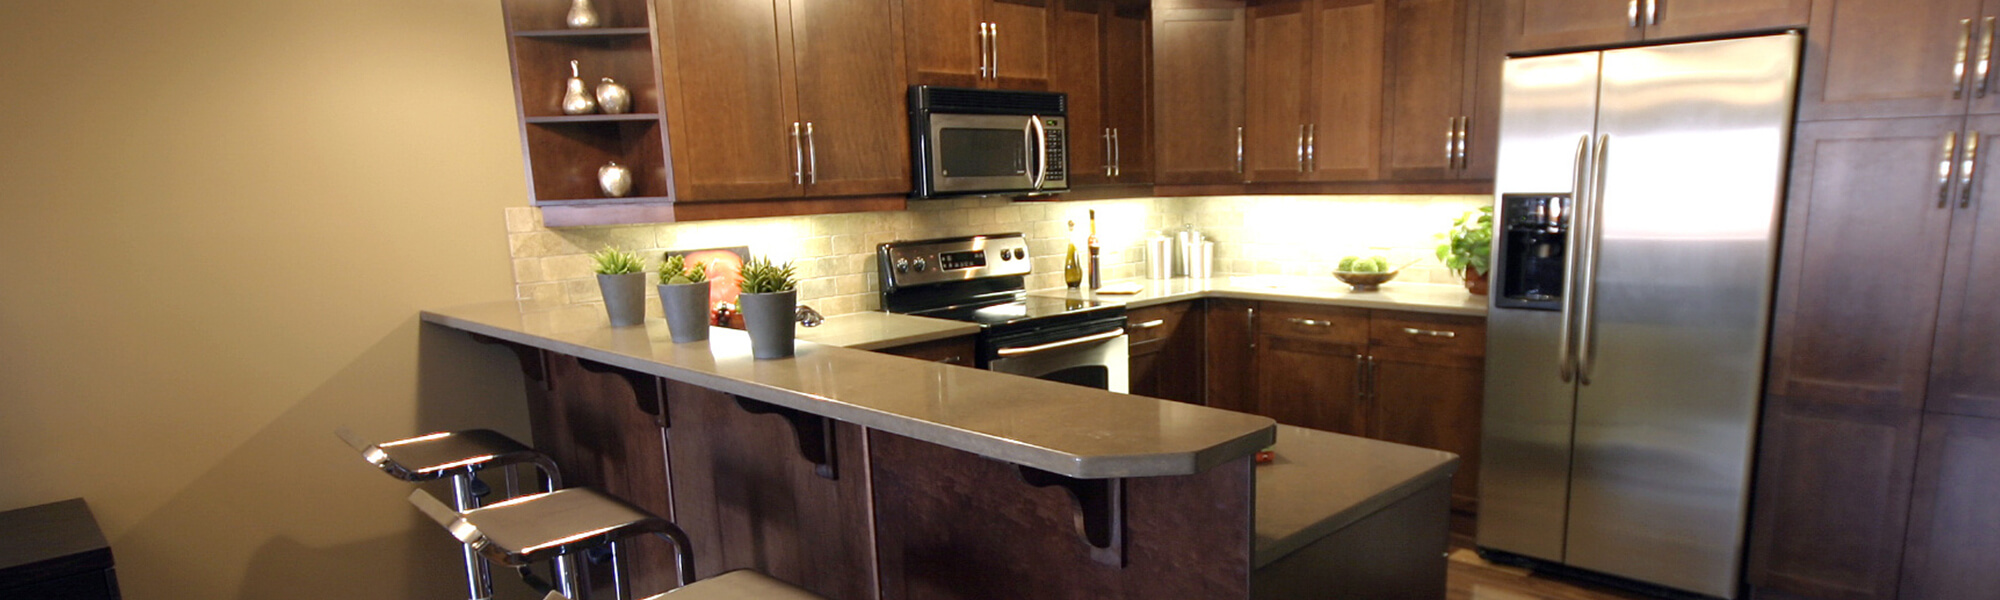 Marvelous Kitchen Solutions LLC